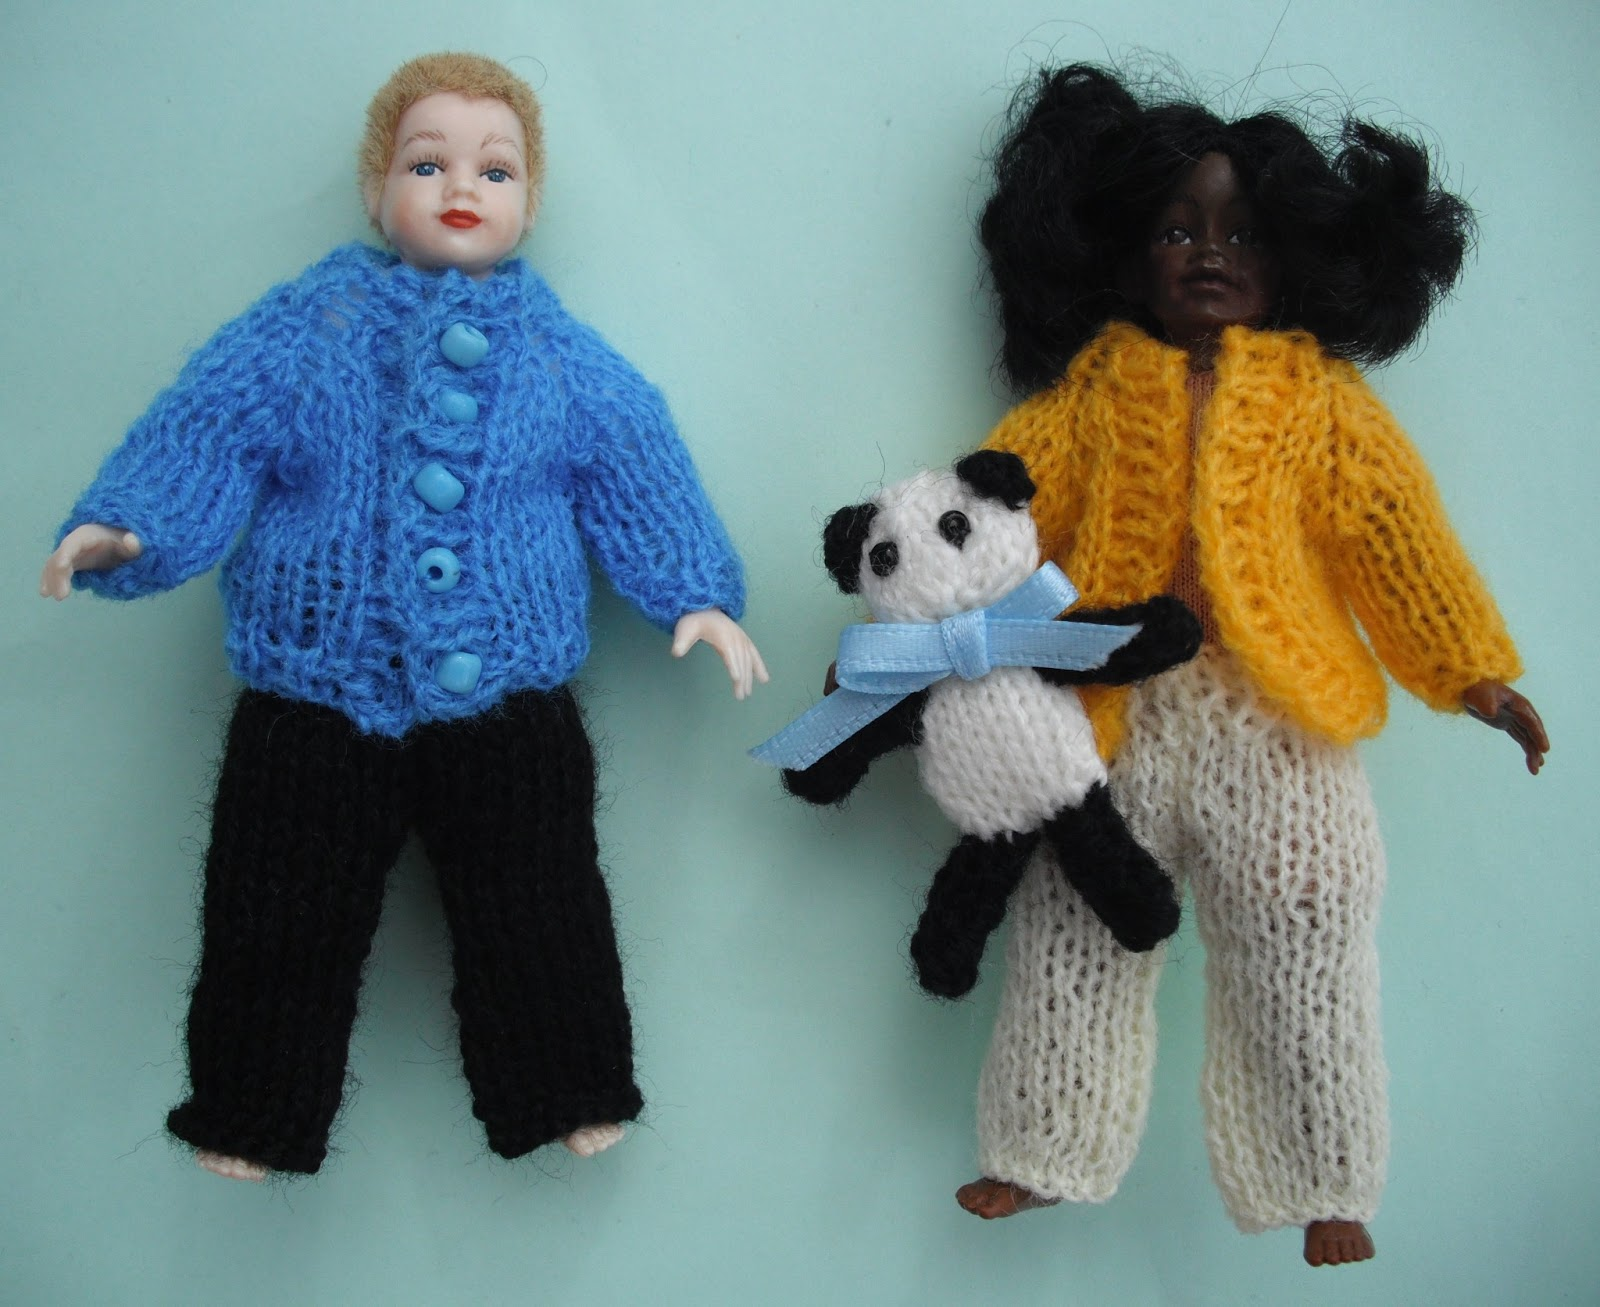 bitstobuy: Another FREE knitting pattern in dolls house scale ...